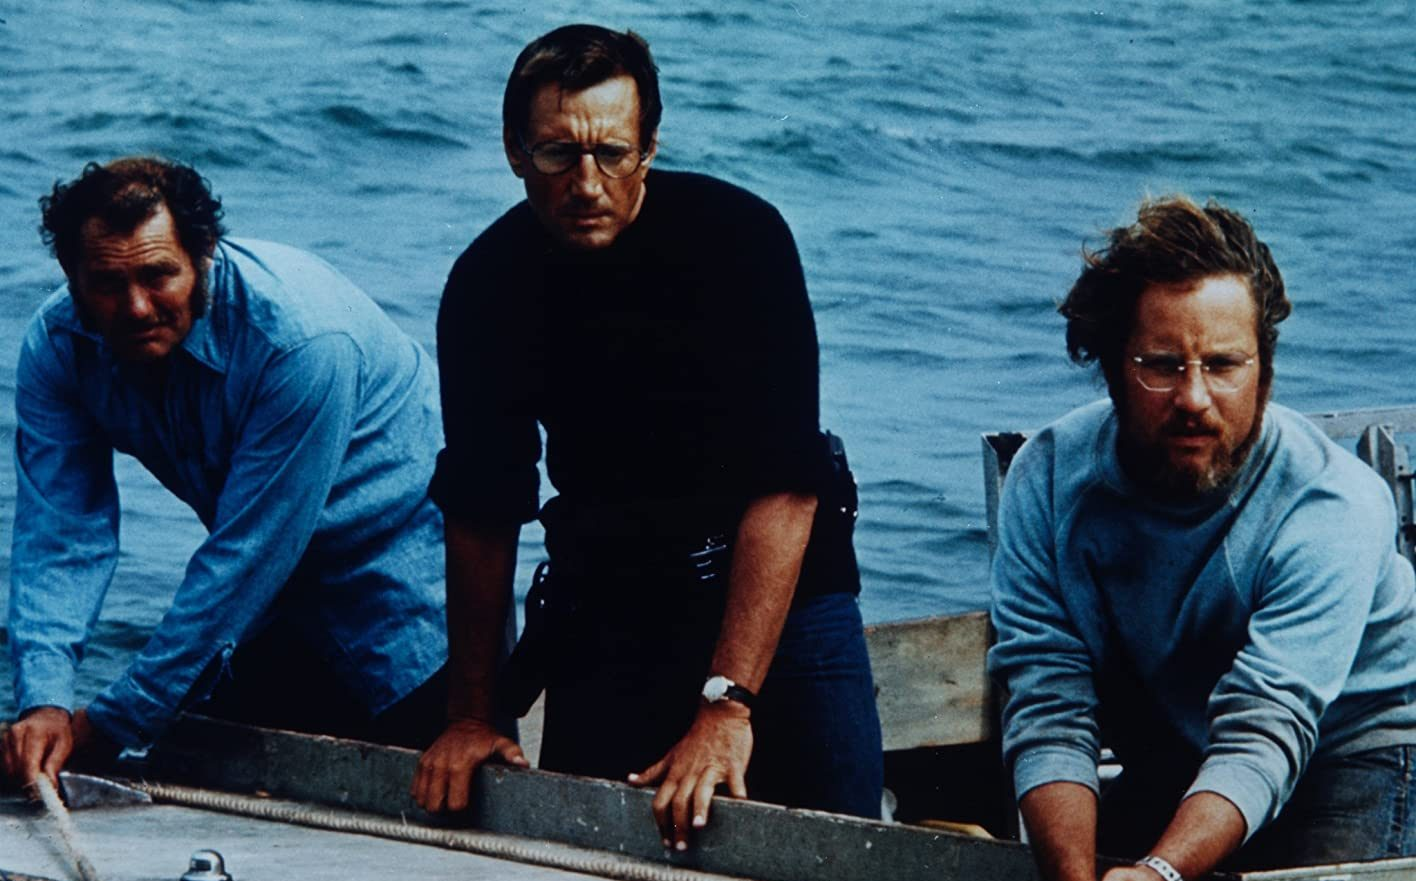 Jaws image film